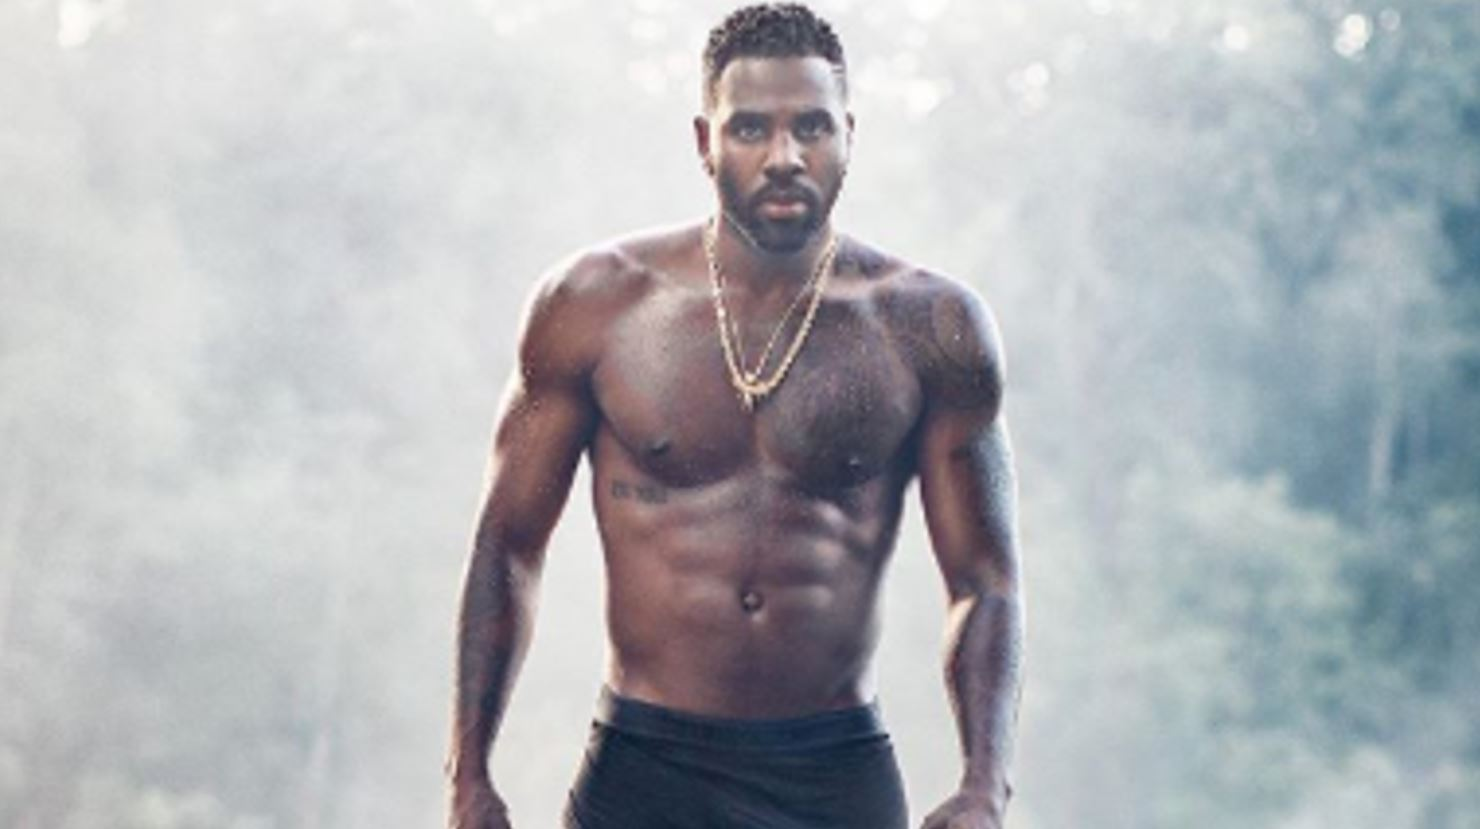 Fotos íntimas de Jason Derulo